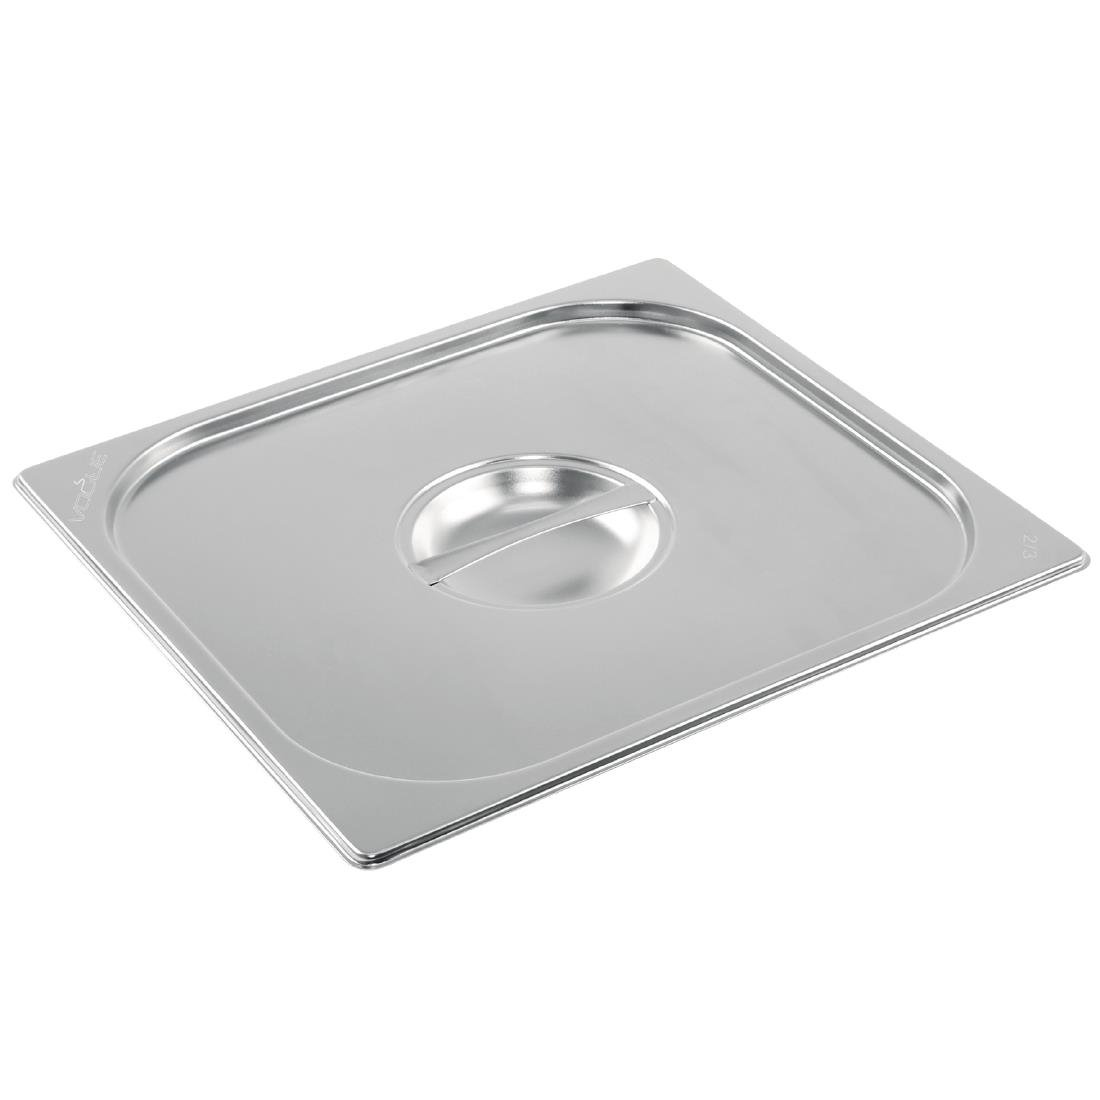 Vogue Stainless Steel 2/3 Gastronorm Lid